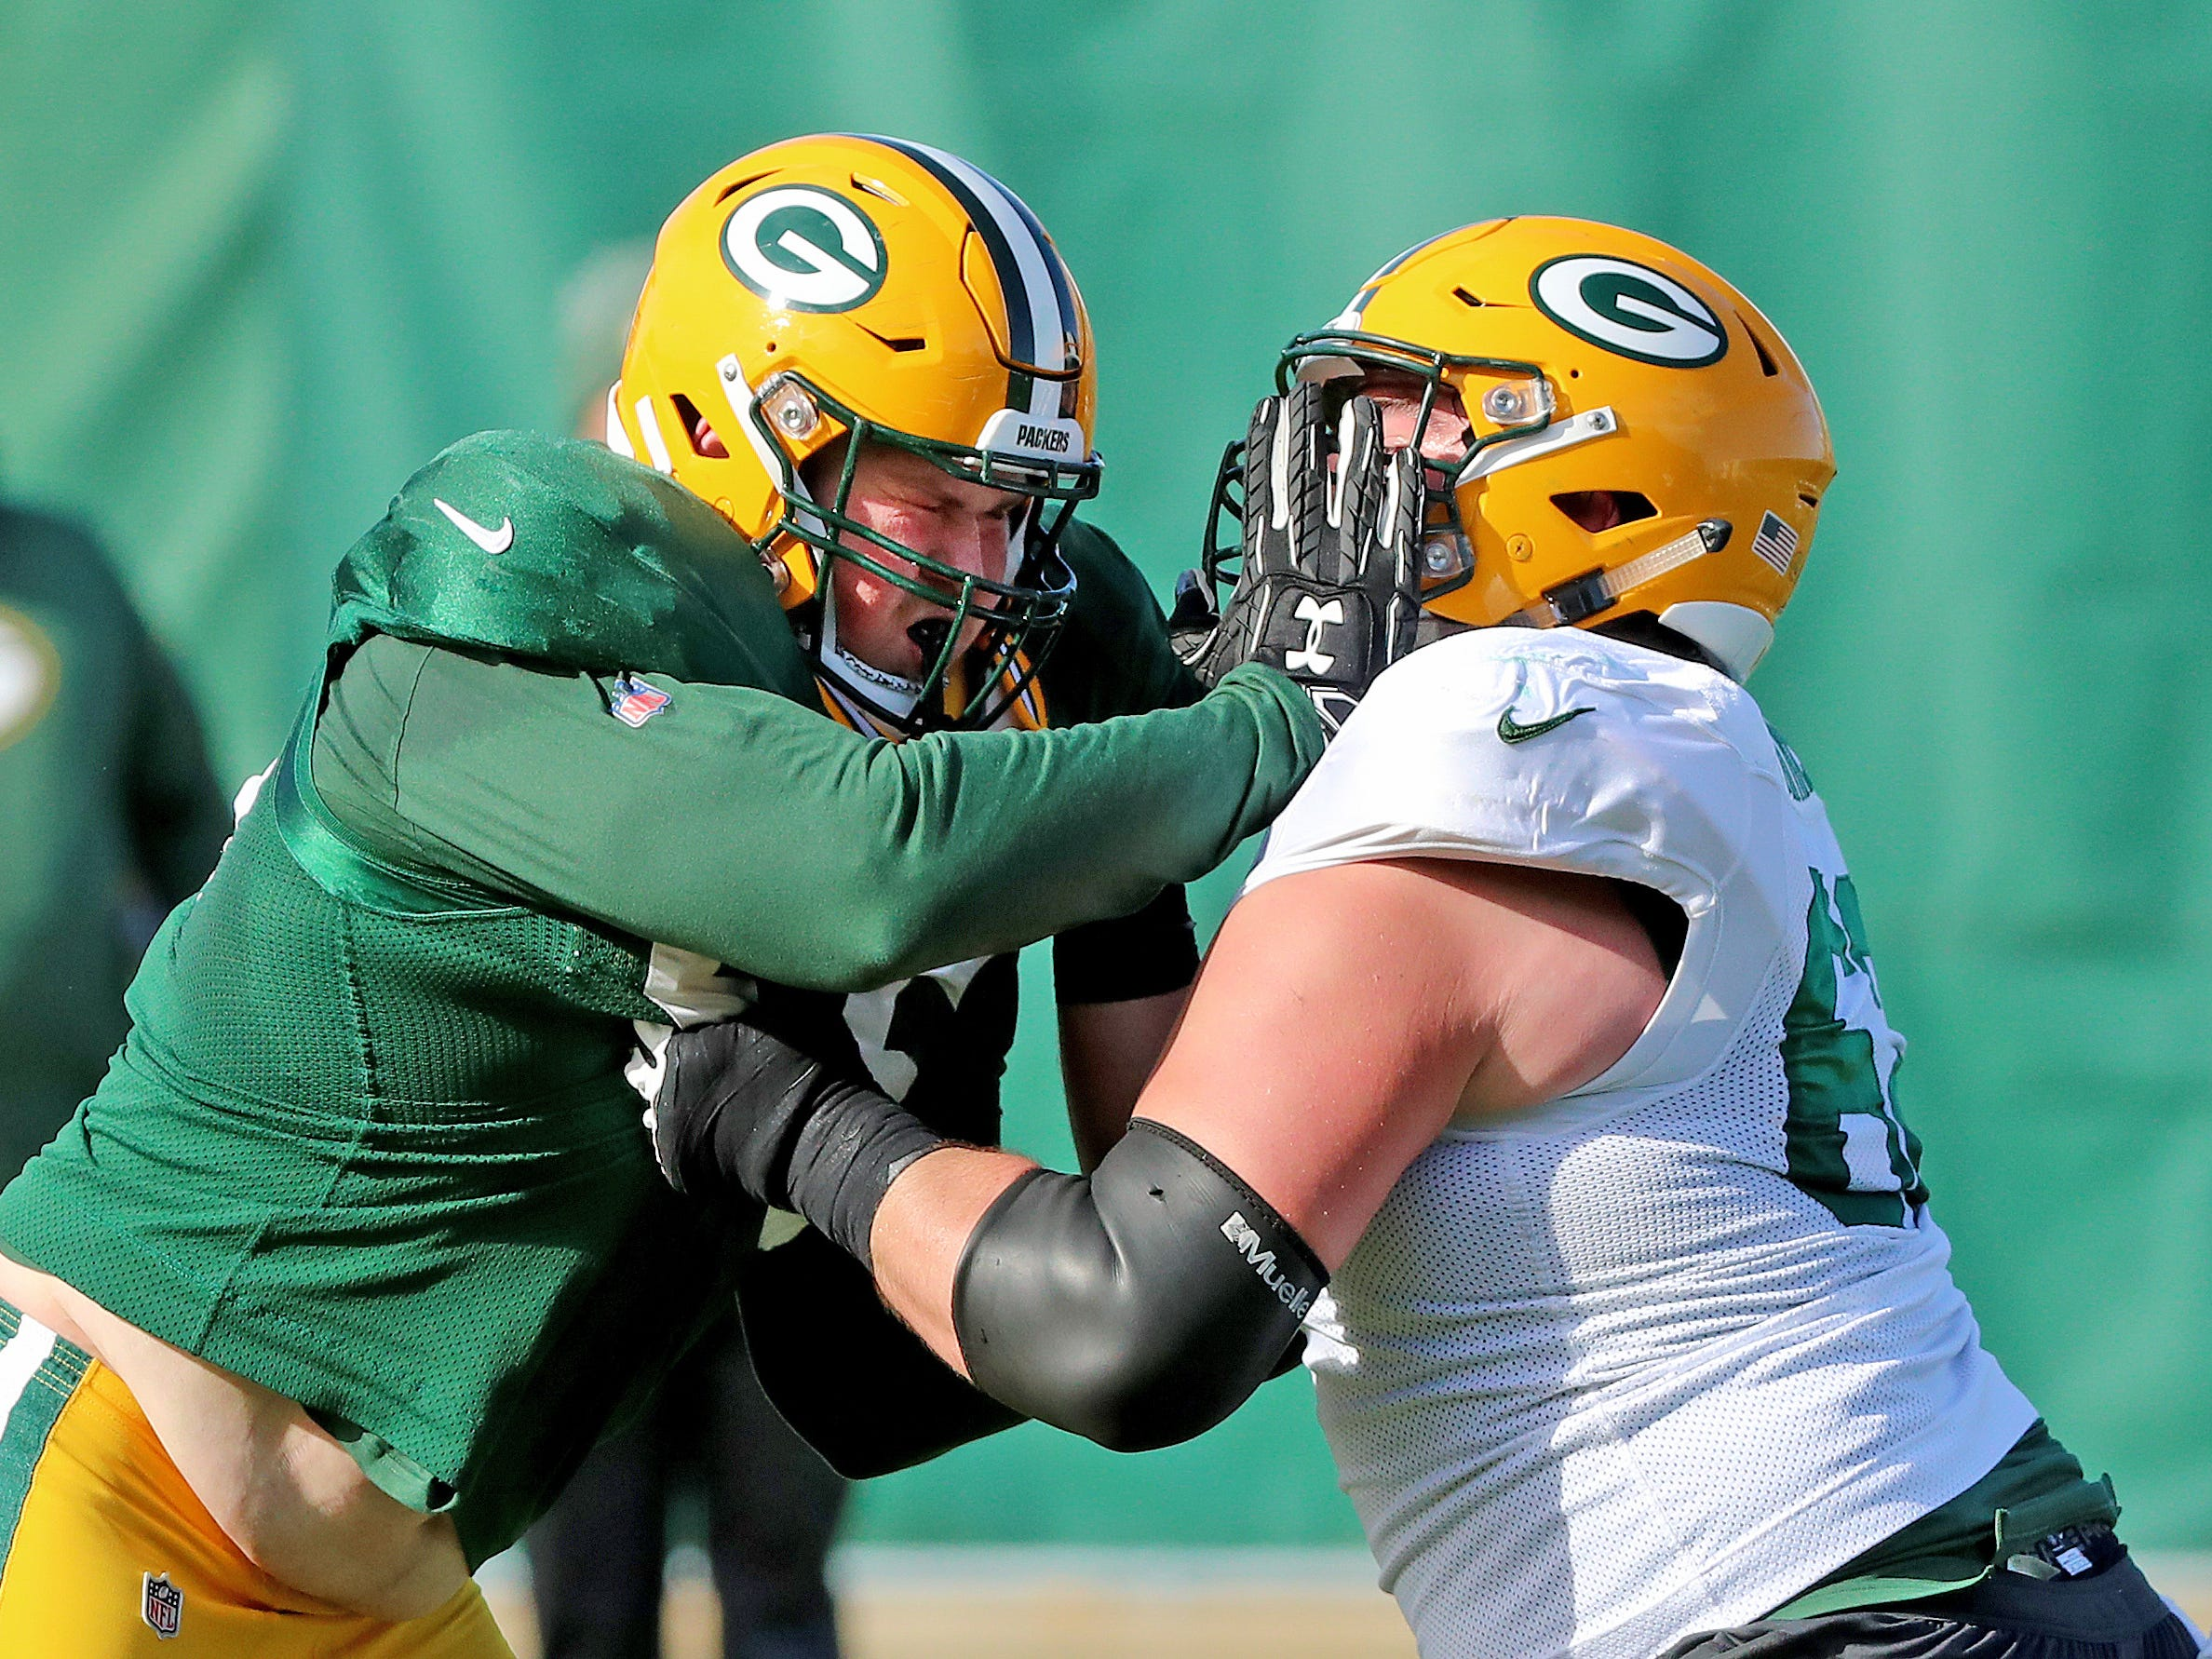 Green Bay Packers offensive guard Lucas Patrick (62) battles defensive tackle Tyler Lancaster (95) during practice on Clarke Hinkle Field Thursday, November 1, 2018 in Ashwaubenon, Wis.